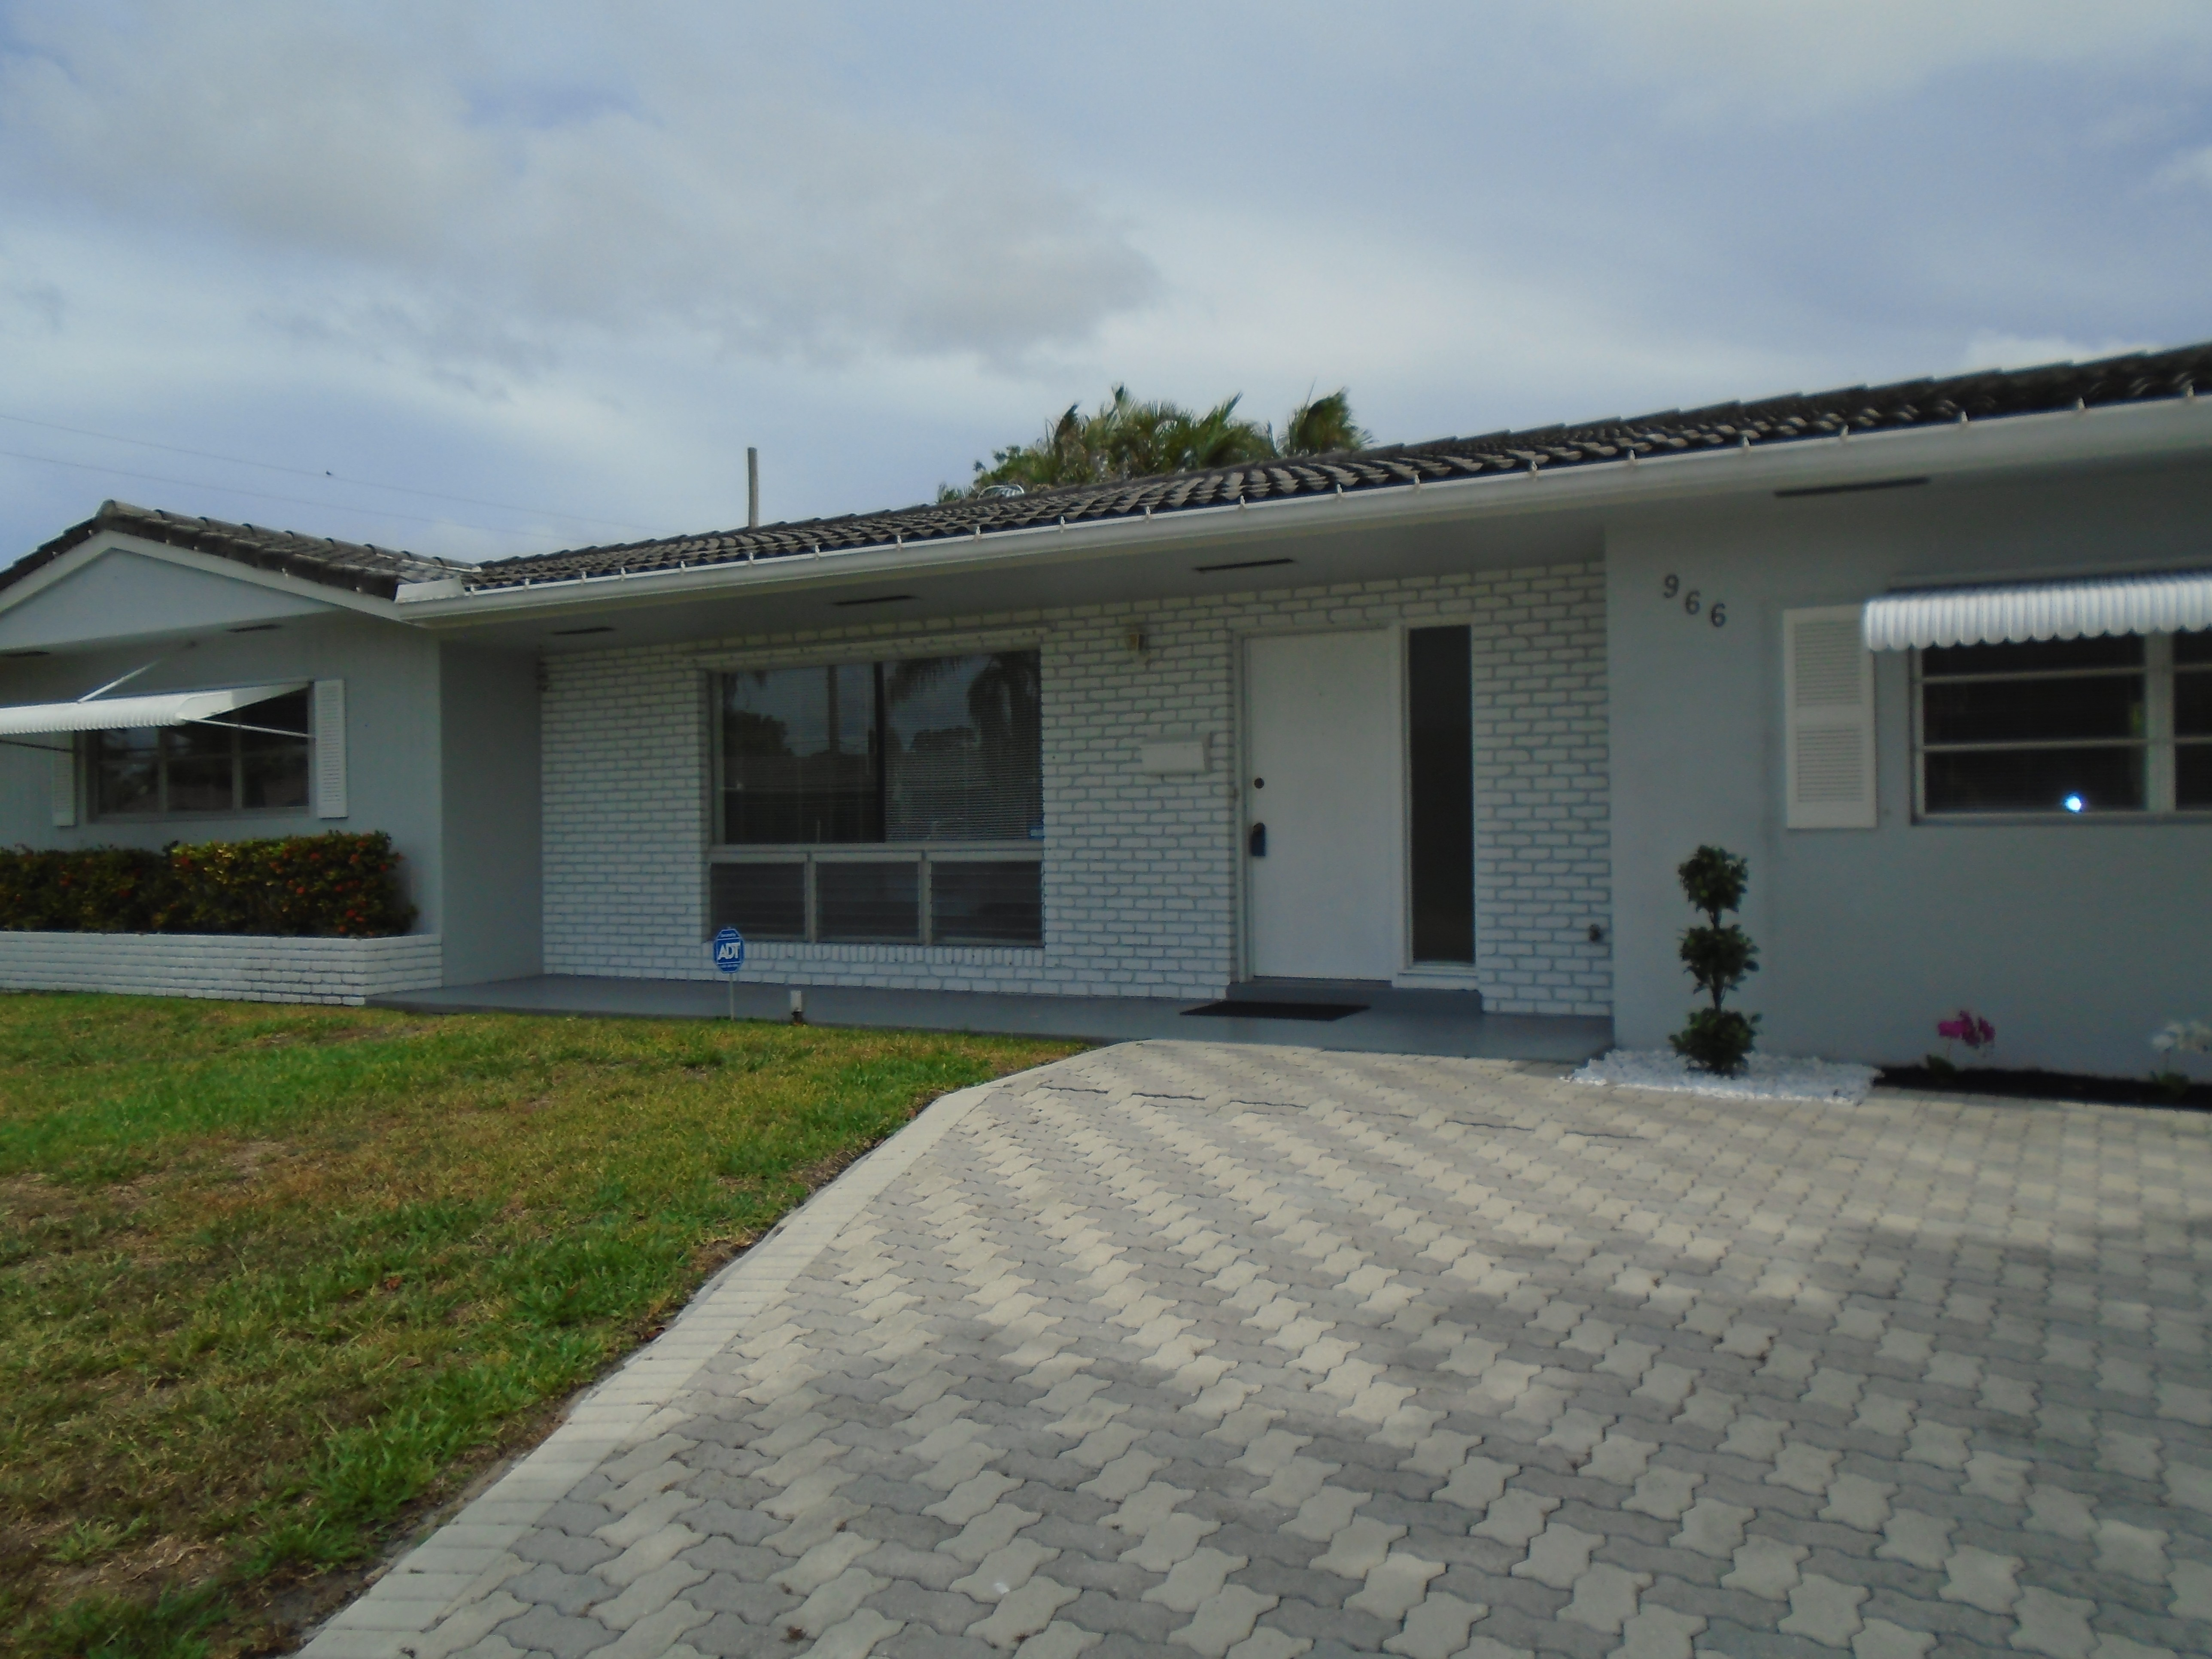 W Royal Palm Rd Boca Raton Fl 33486 3 Bedroom House For Rent For 2 100 Month Zumper